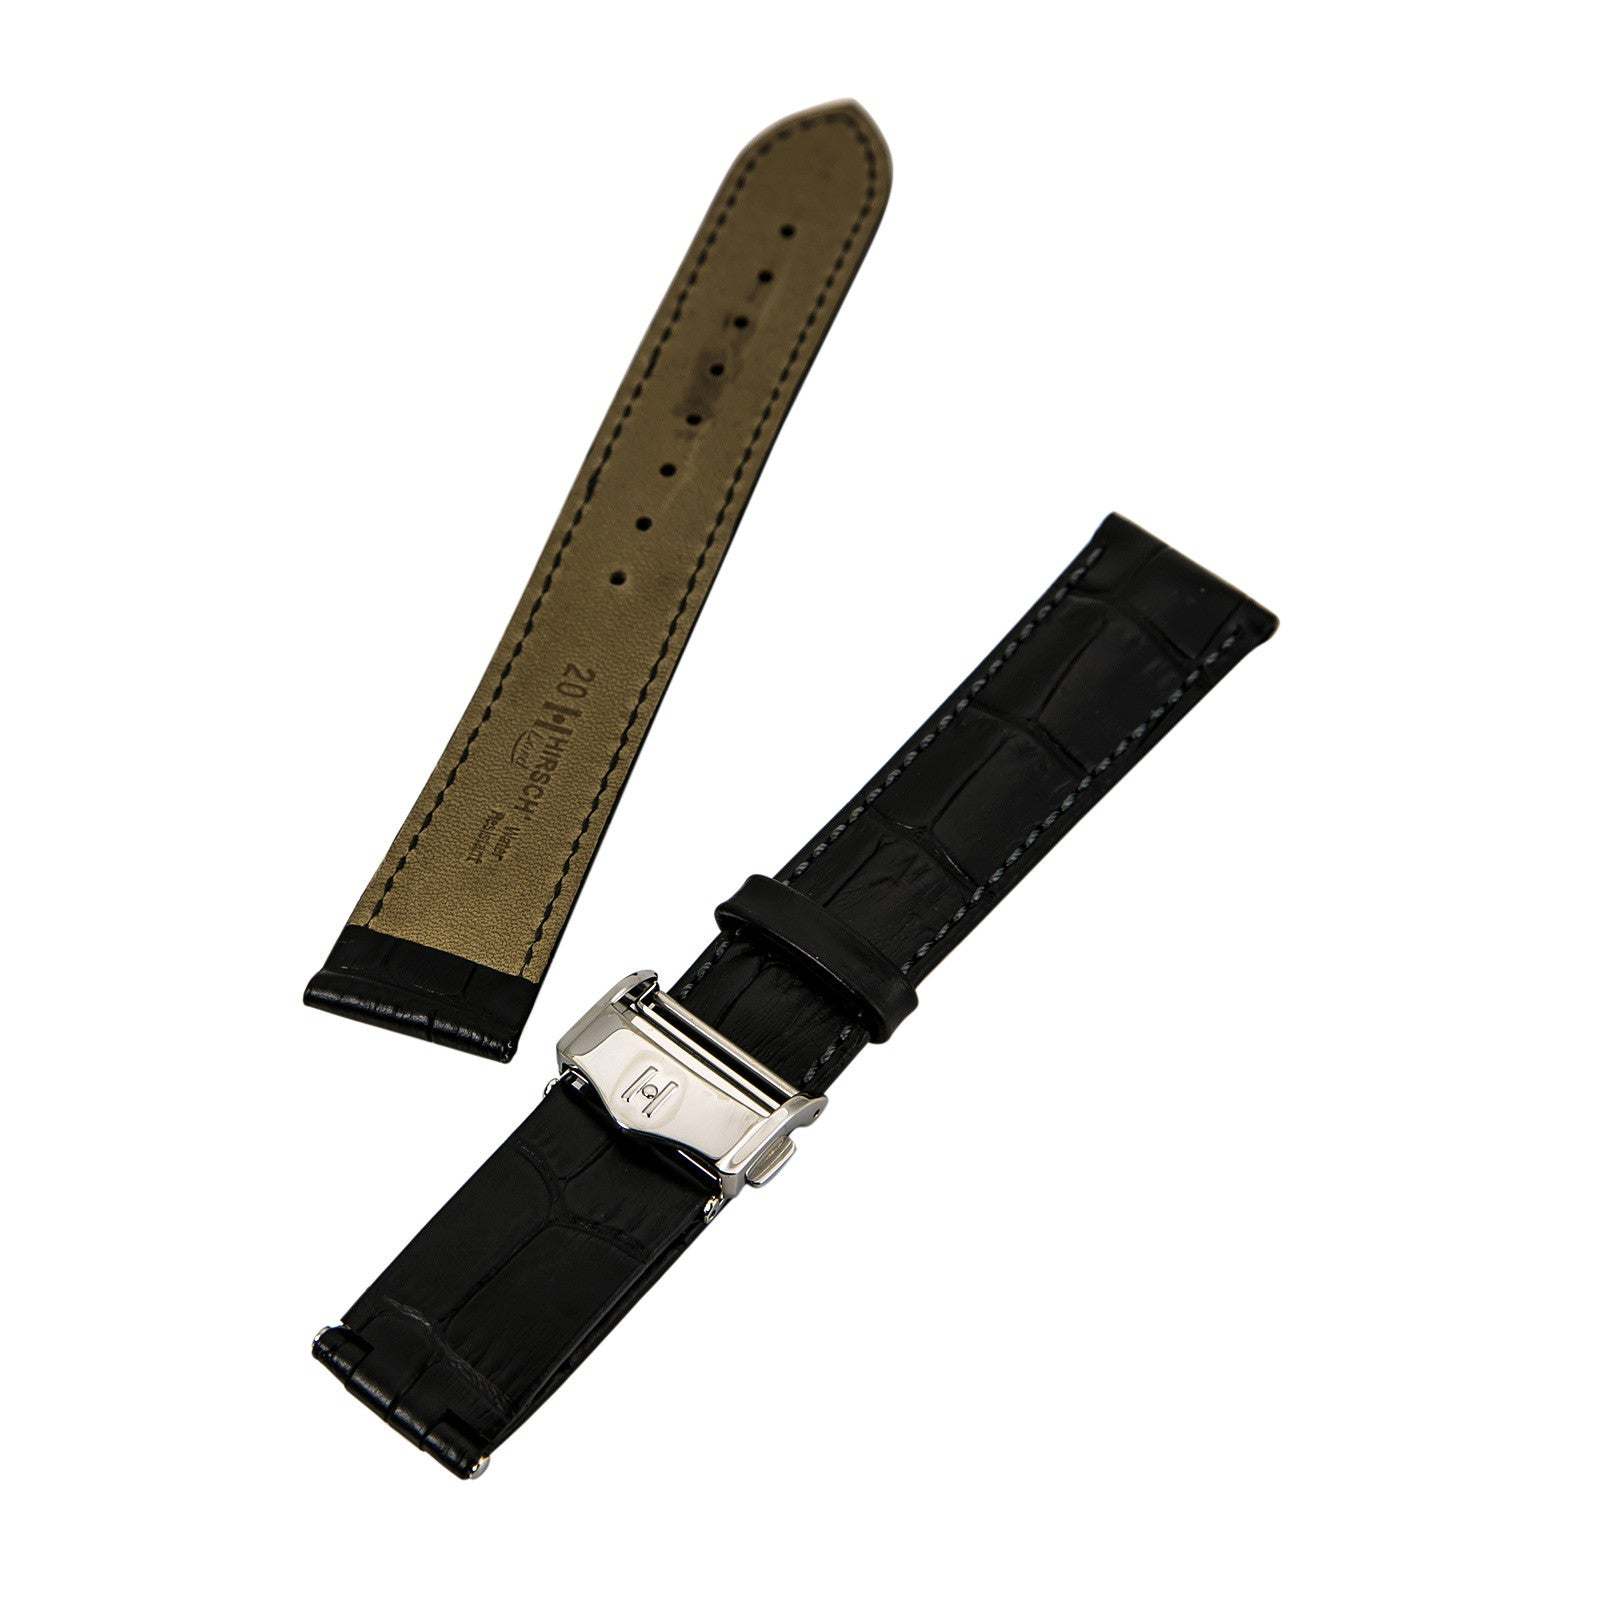 Hirsch 's Lord Black 18 mm Wide Alligator Leather Strap